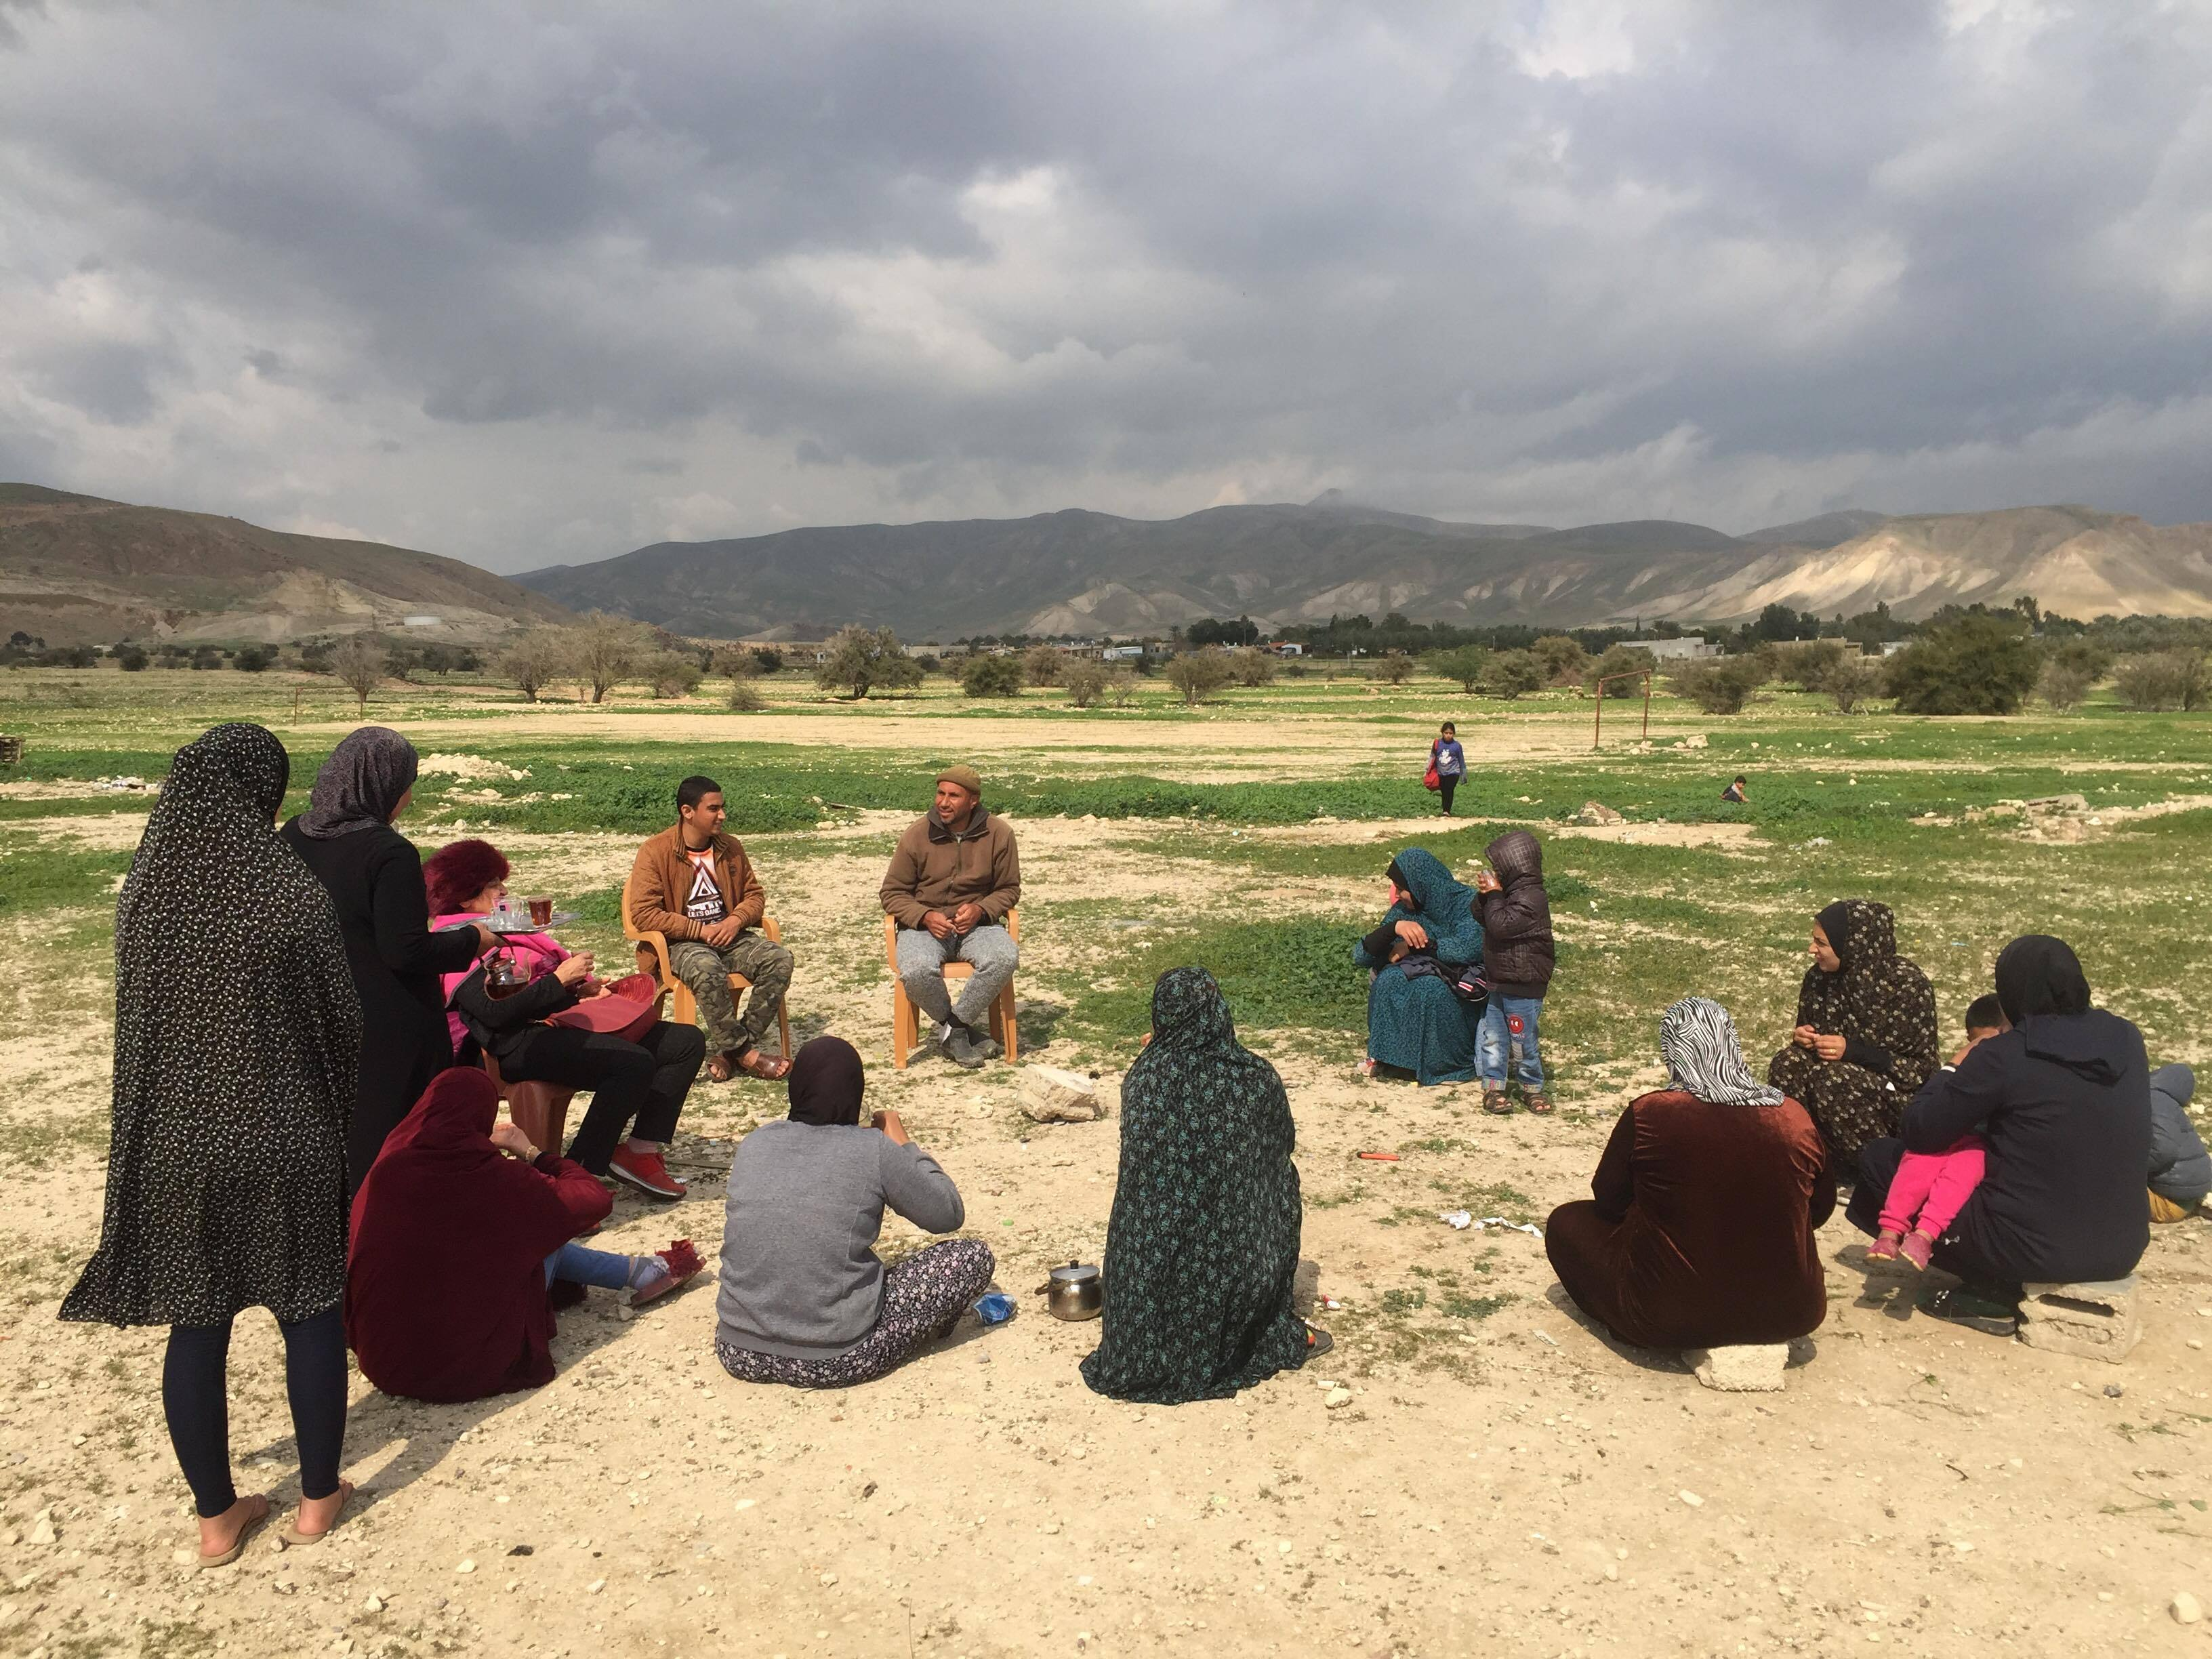 Palestinian residents of the village of Fasayil in the Jordan Valley sit together for an afternoon tea break.